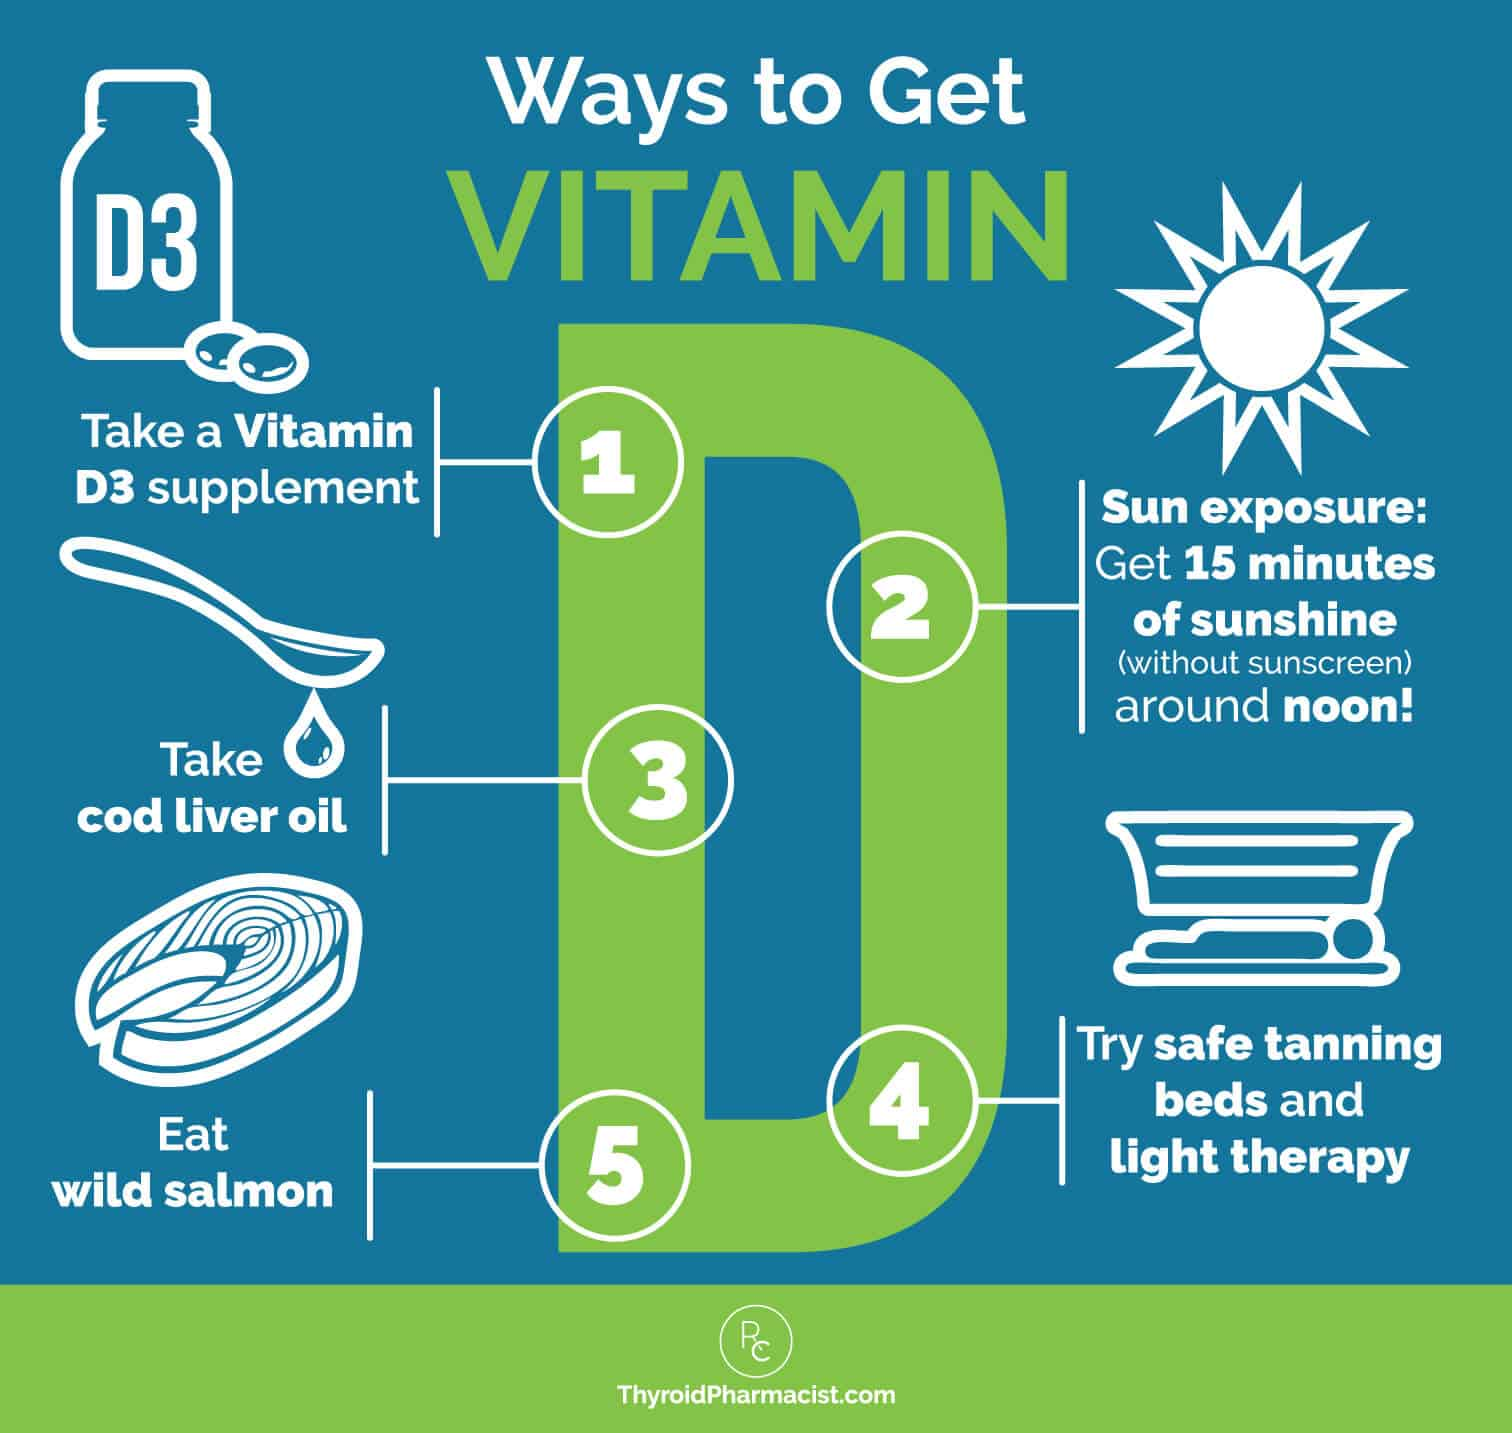 Ways to Get Vitamin D Infographic